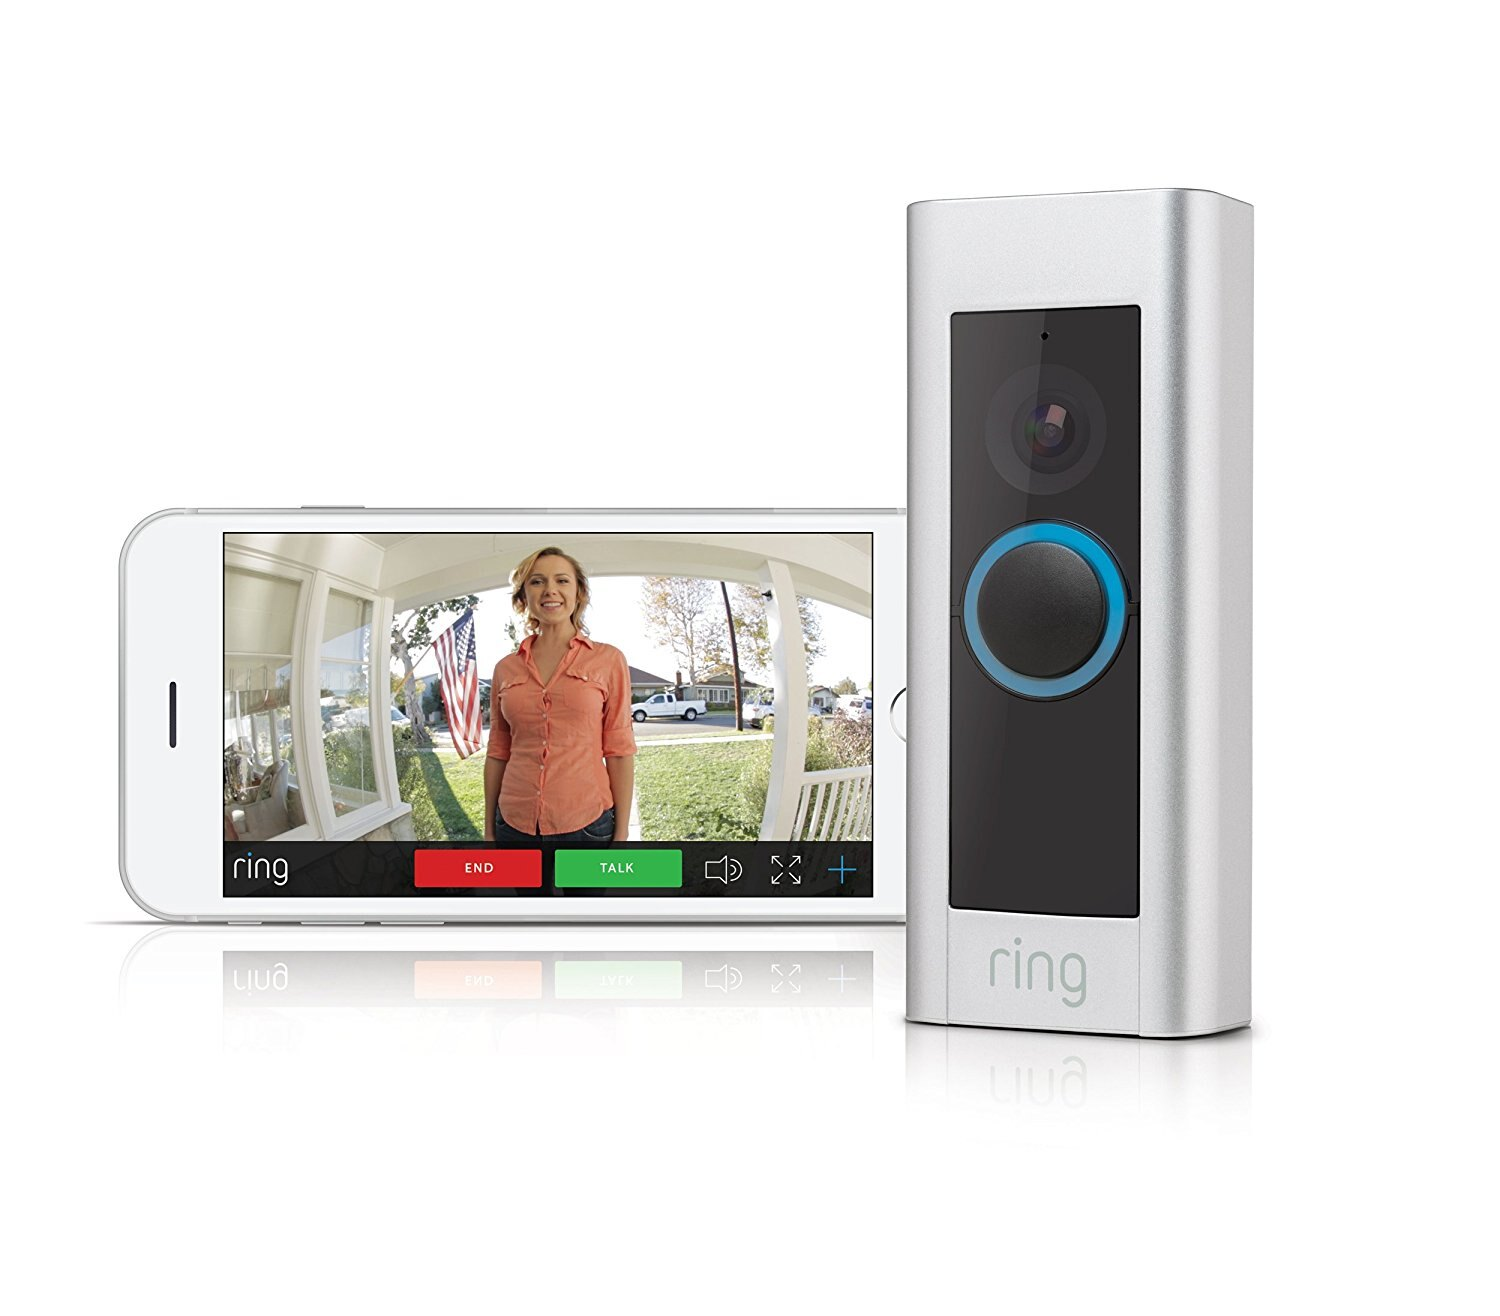 Good Guys Electronics Ring Smart Home Security Video Doorbell Pro Household Wiring Existing Required Works With